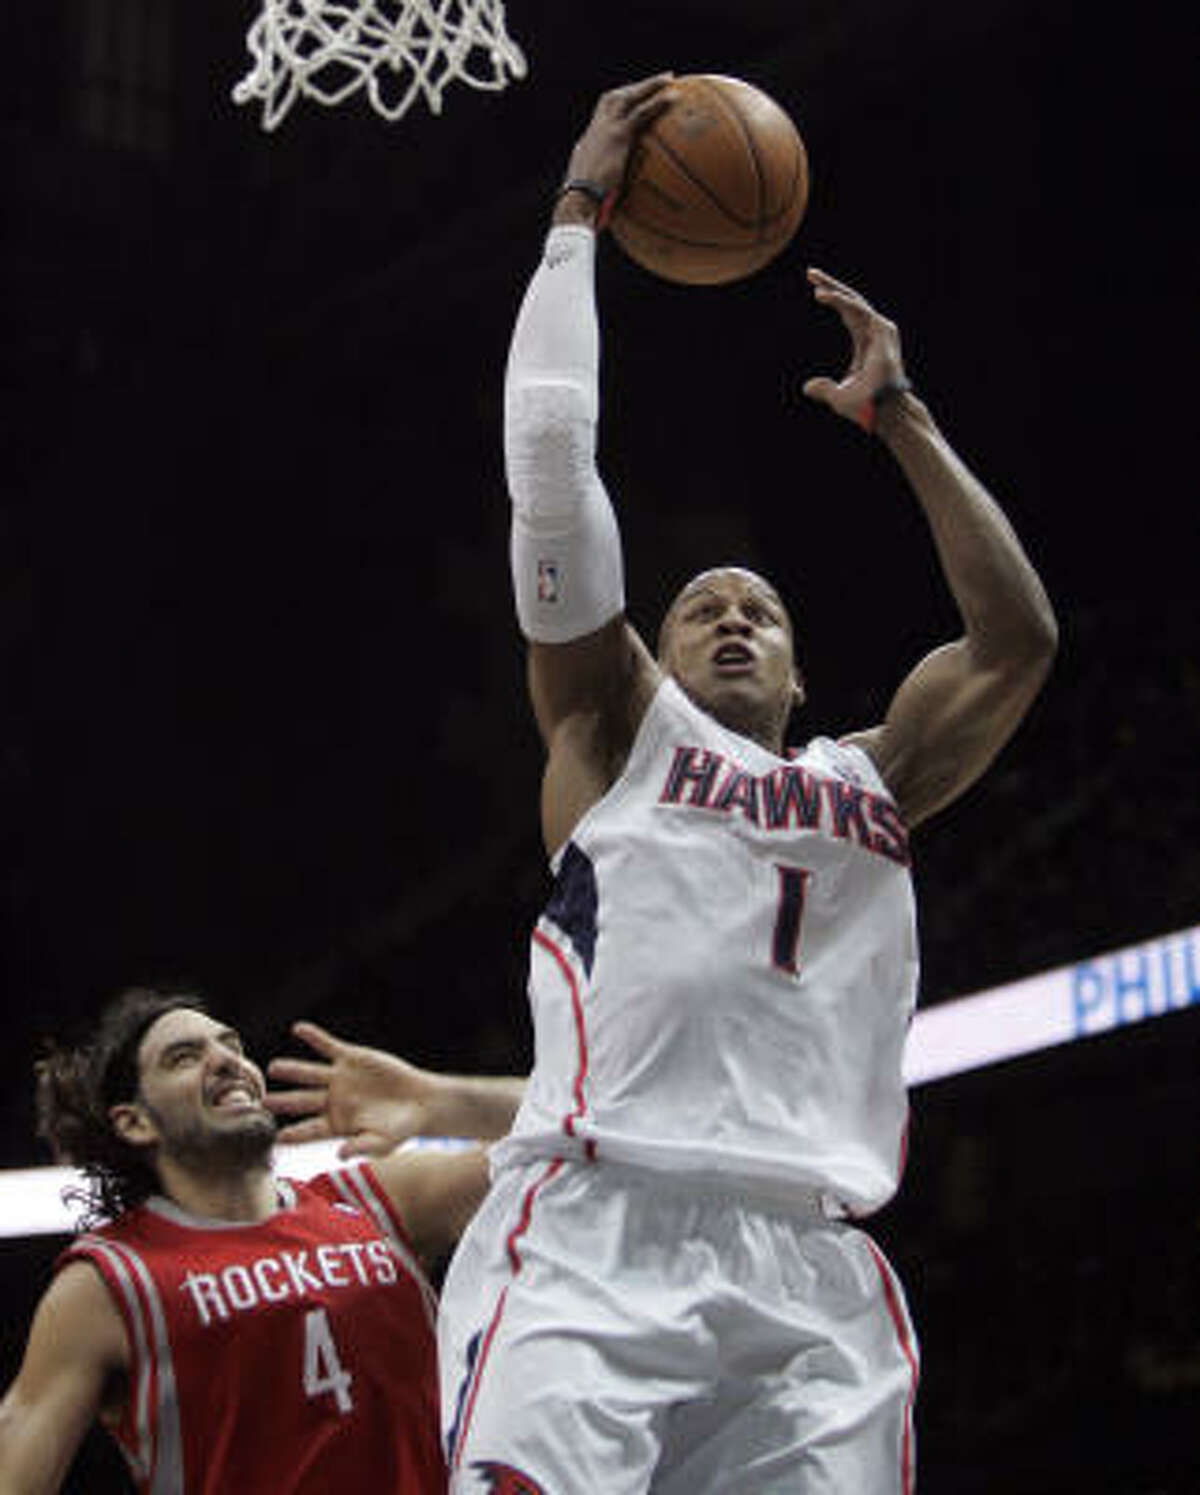 Hawks small forward Maurice Evans (1) beats Rockets forward Luis Scola to the basket in the first half.